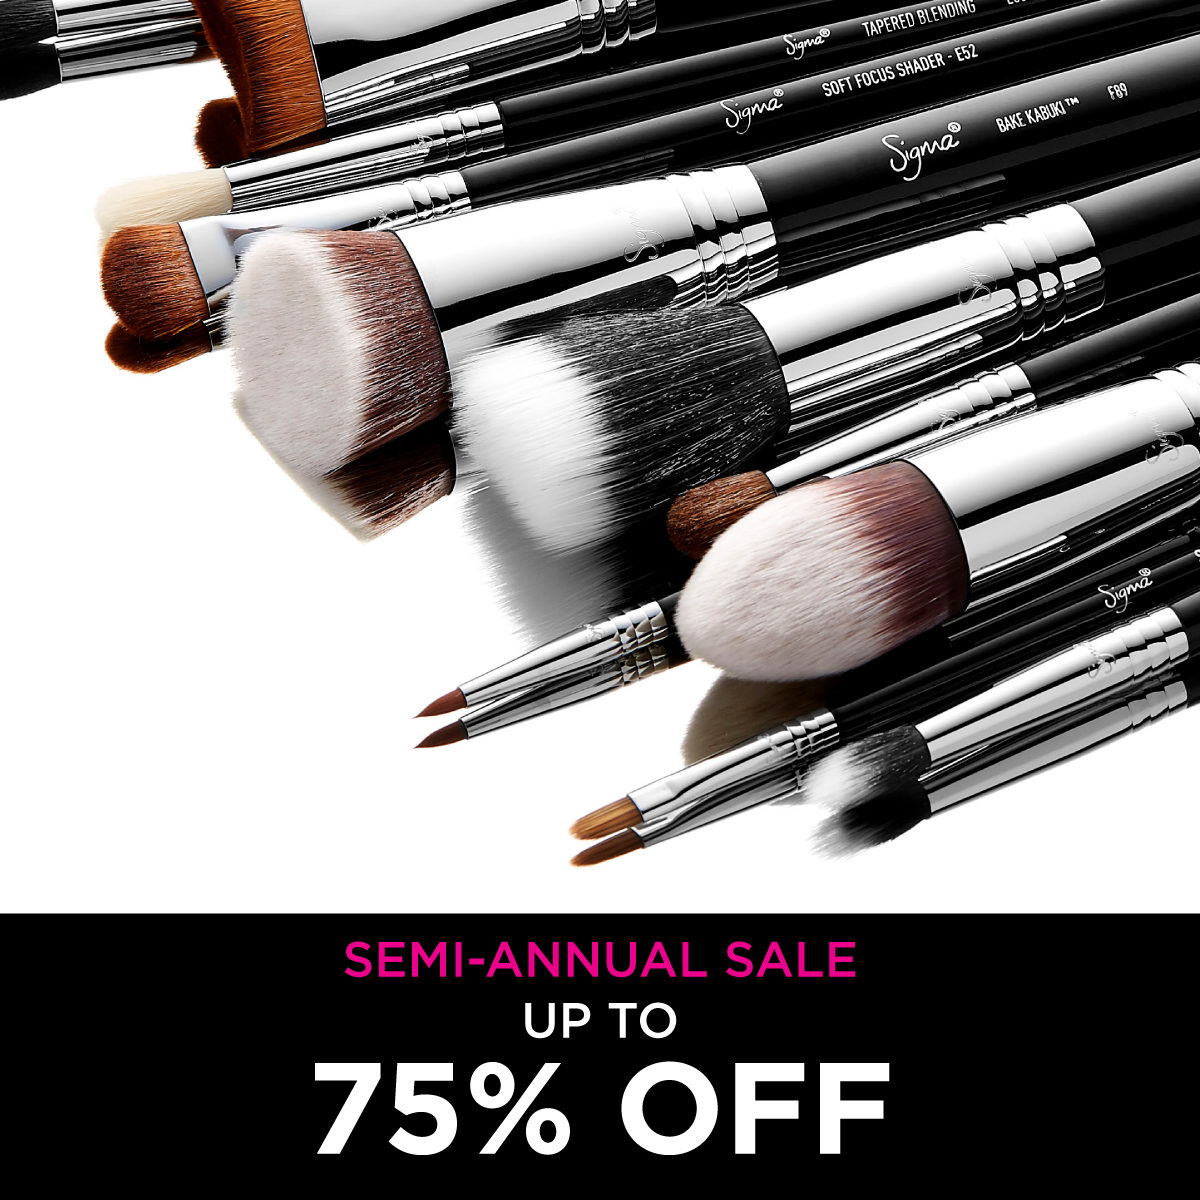 NEW Year, NEW deals: up to 75% OFF! Shop Now > #sigmabrushes #sale